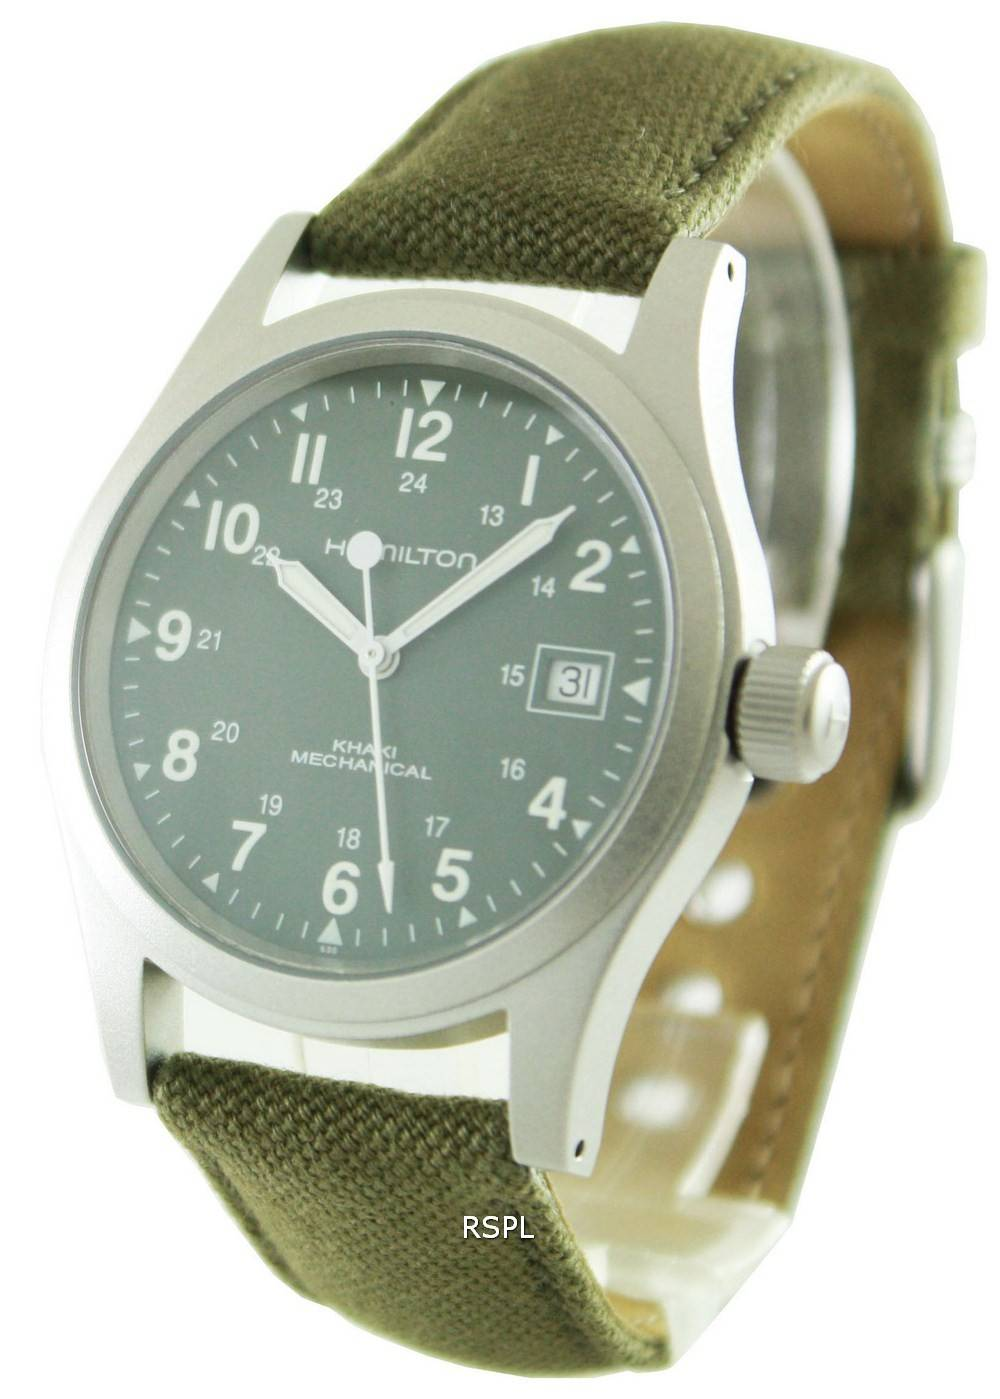 Good Watch Brands For Men >> Hamilton Khaki Field Mechanical H69419363 Mens Watch Singapore